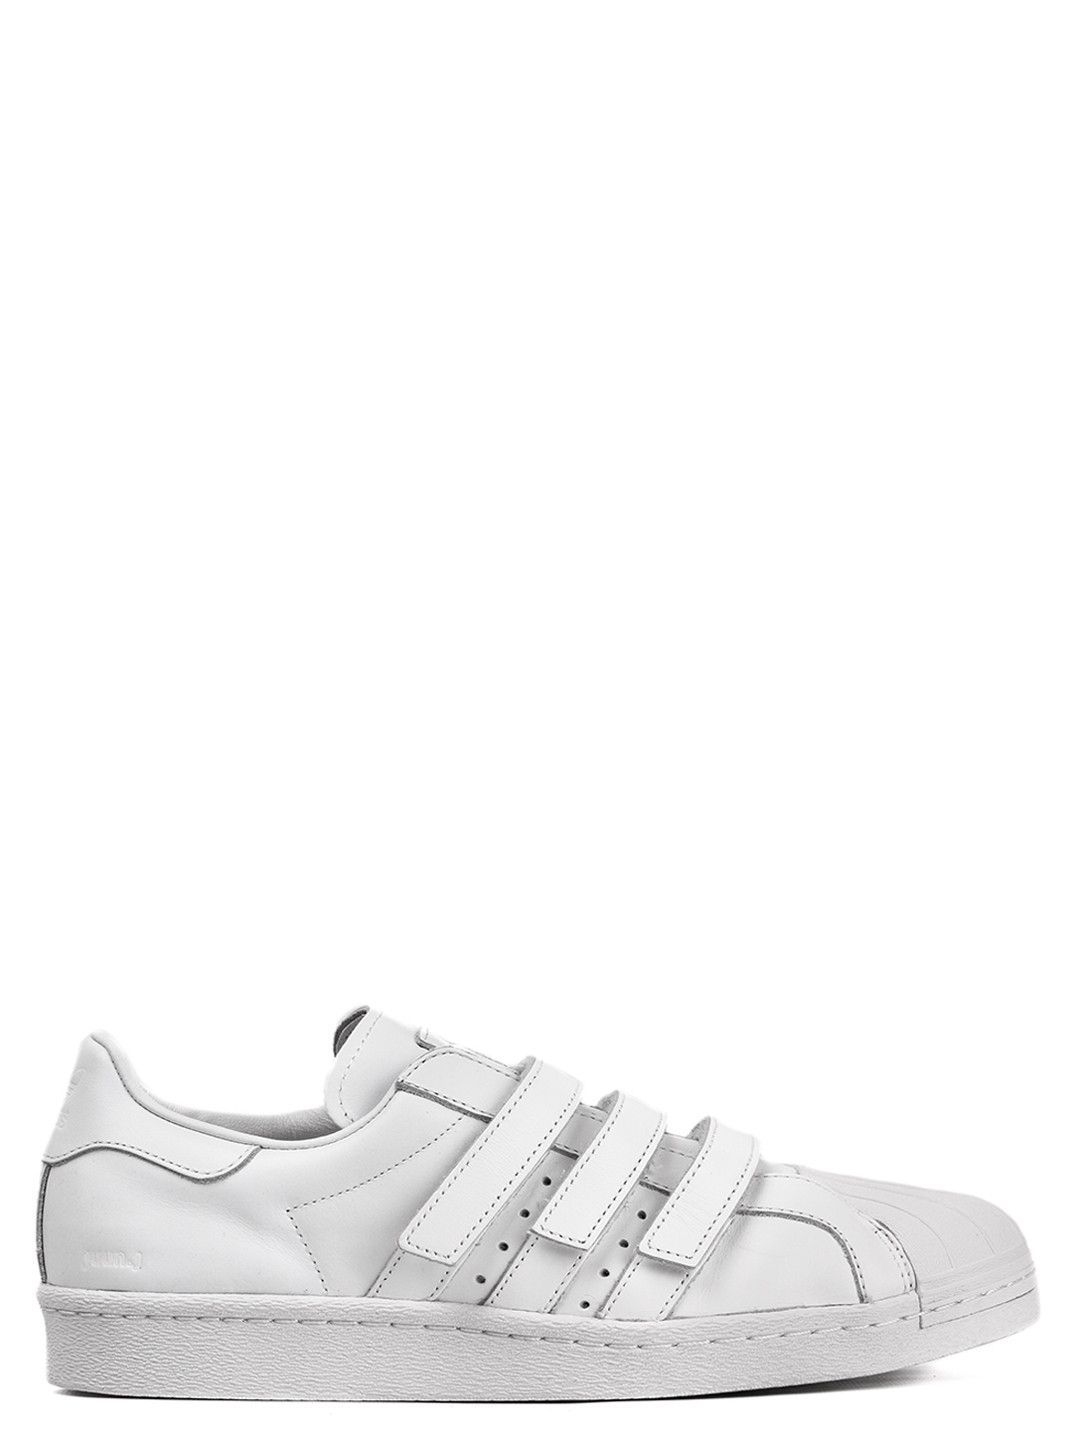 check out 82435 915b5 Adidas x Juun J. Superstar 80s Lo S82809 | Footwear ...